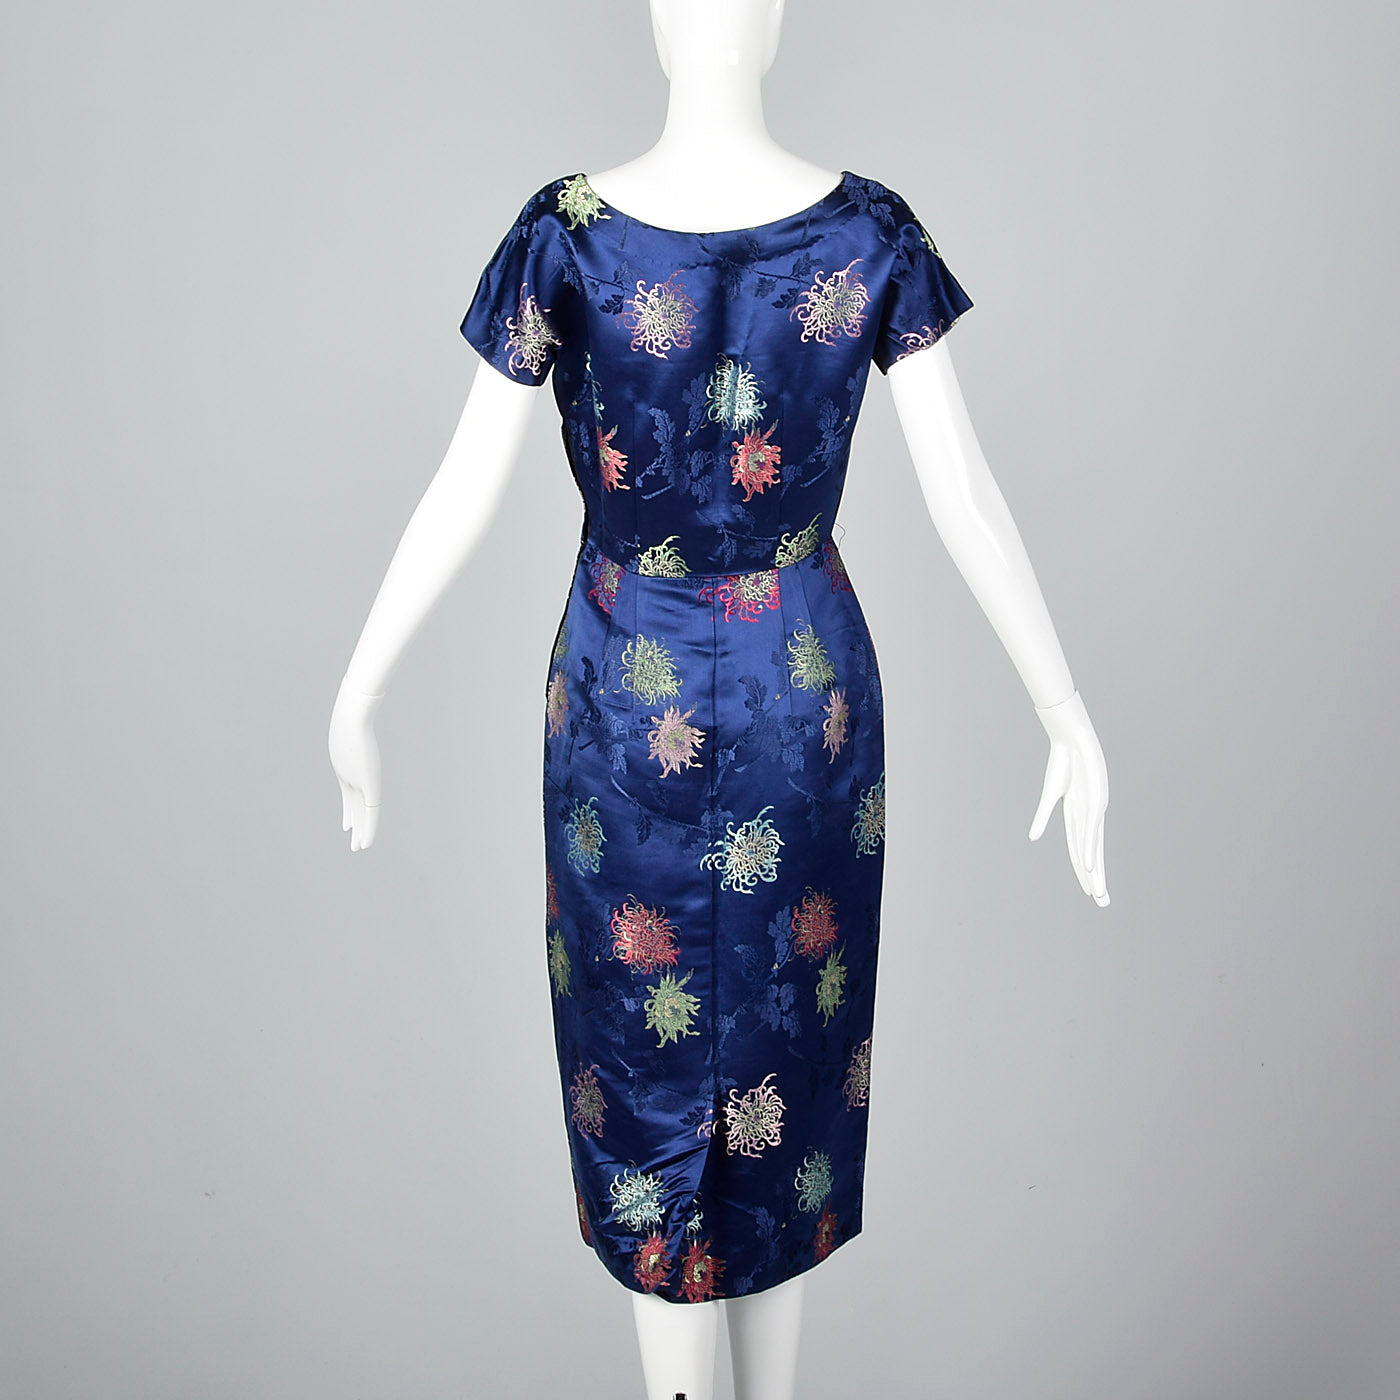 1960s Blue Brocade Dress with Matching Jacket